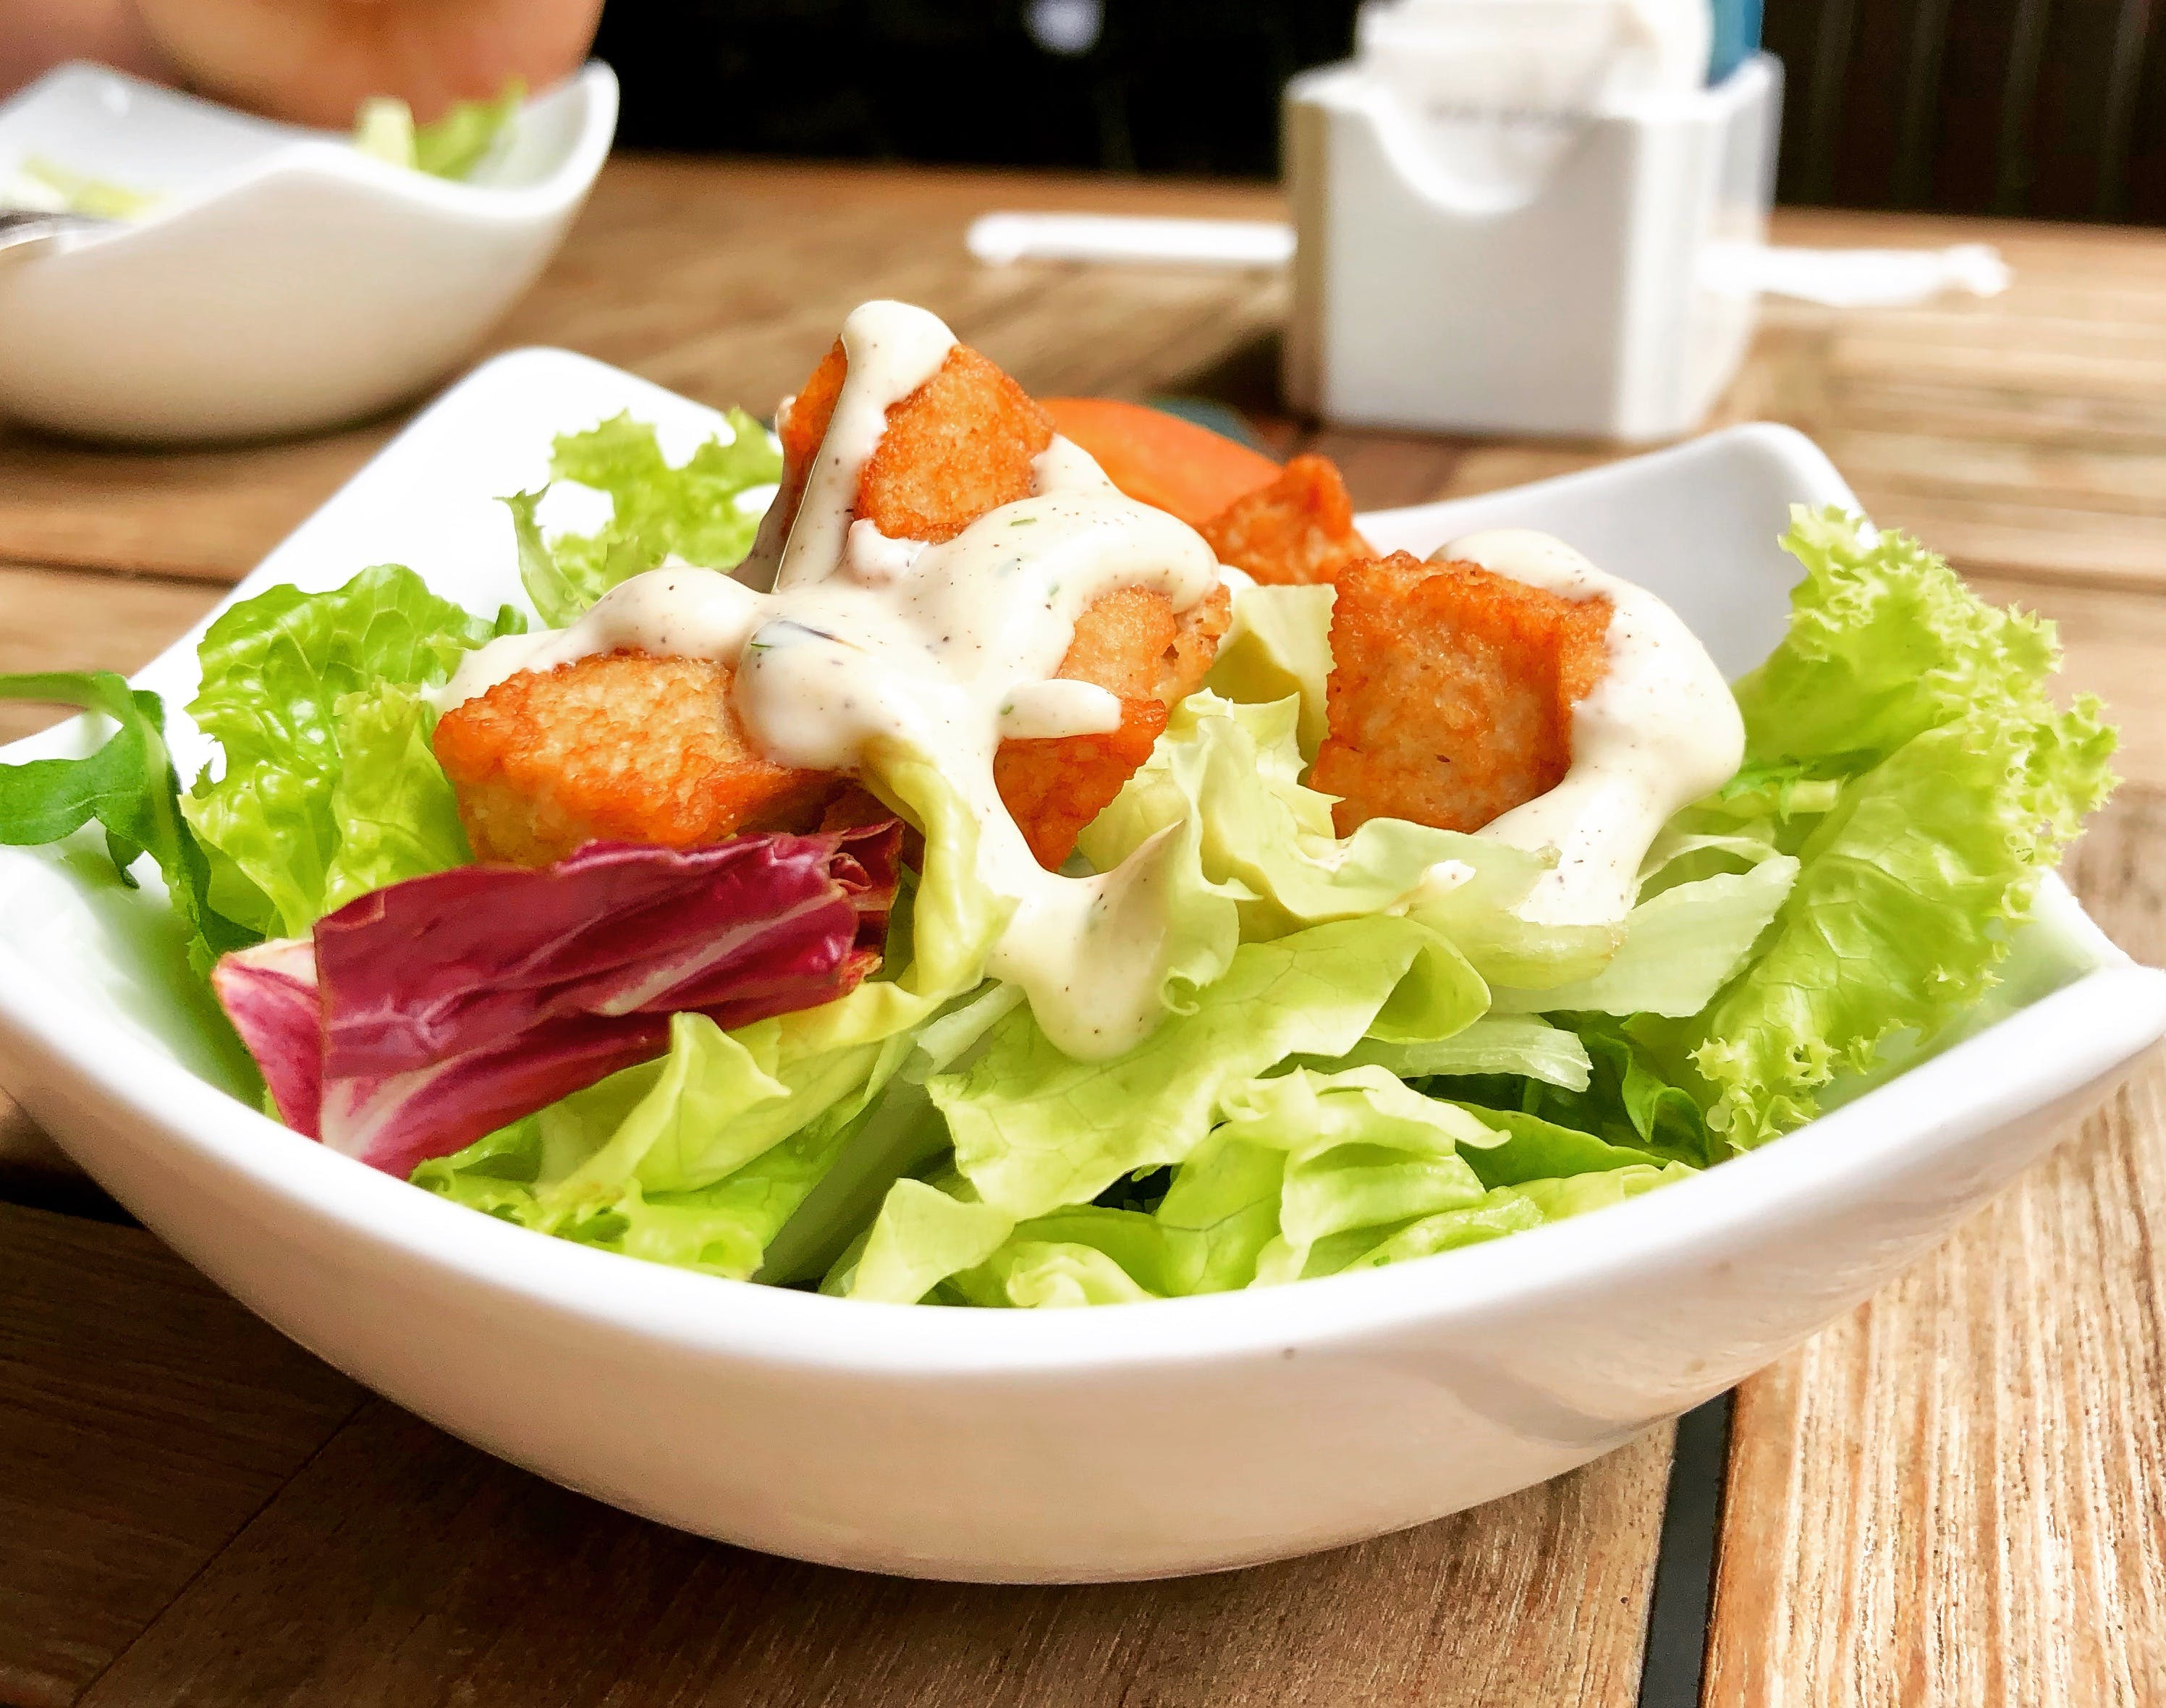 Vegetable Salad on Top of White Ceramic Plate